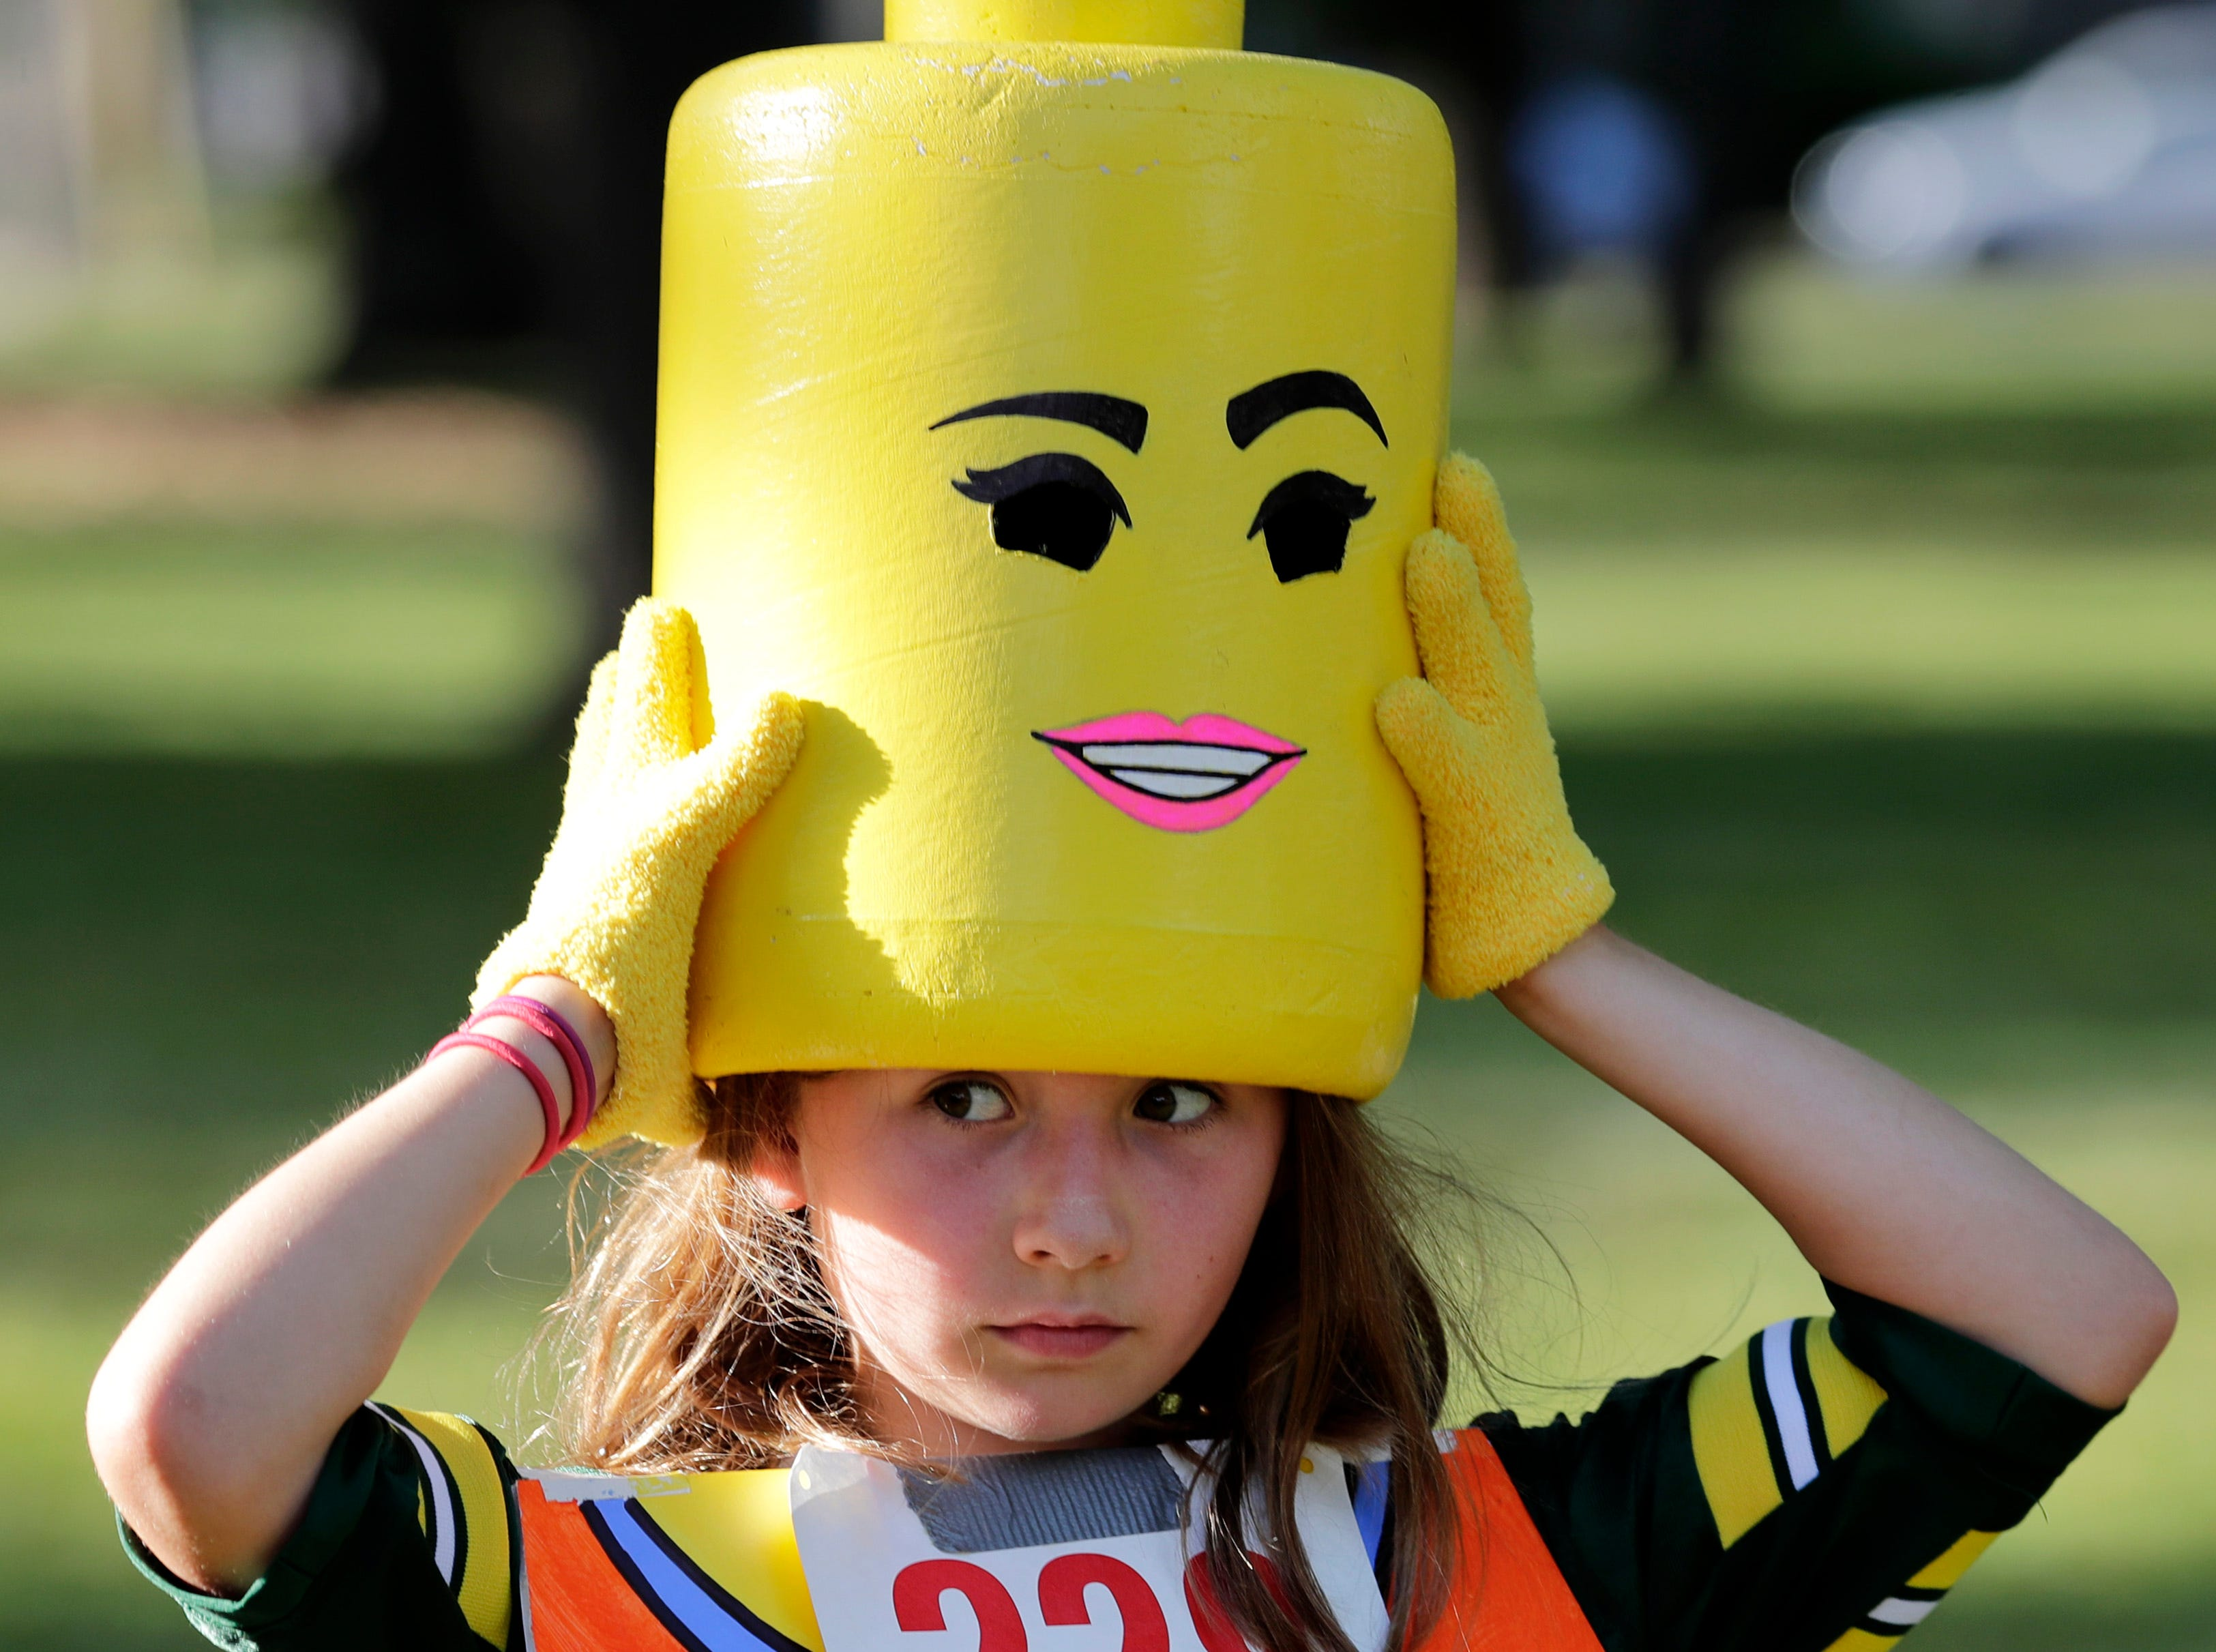 Ada Vieaux, 9, of Appleton, puts her Lego hat back on after the 10th annual ChildrenÕs Parade Wednesday, July 25, 2018, in Appleton, Wis. Danny Damiani/USA TODAY NETWORK-Wisconsin